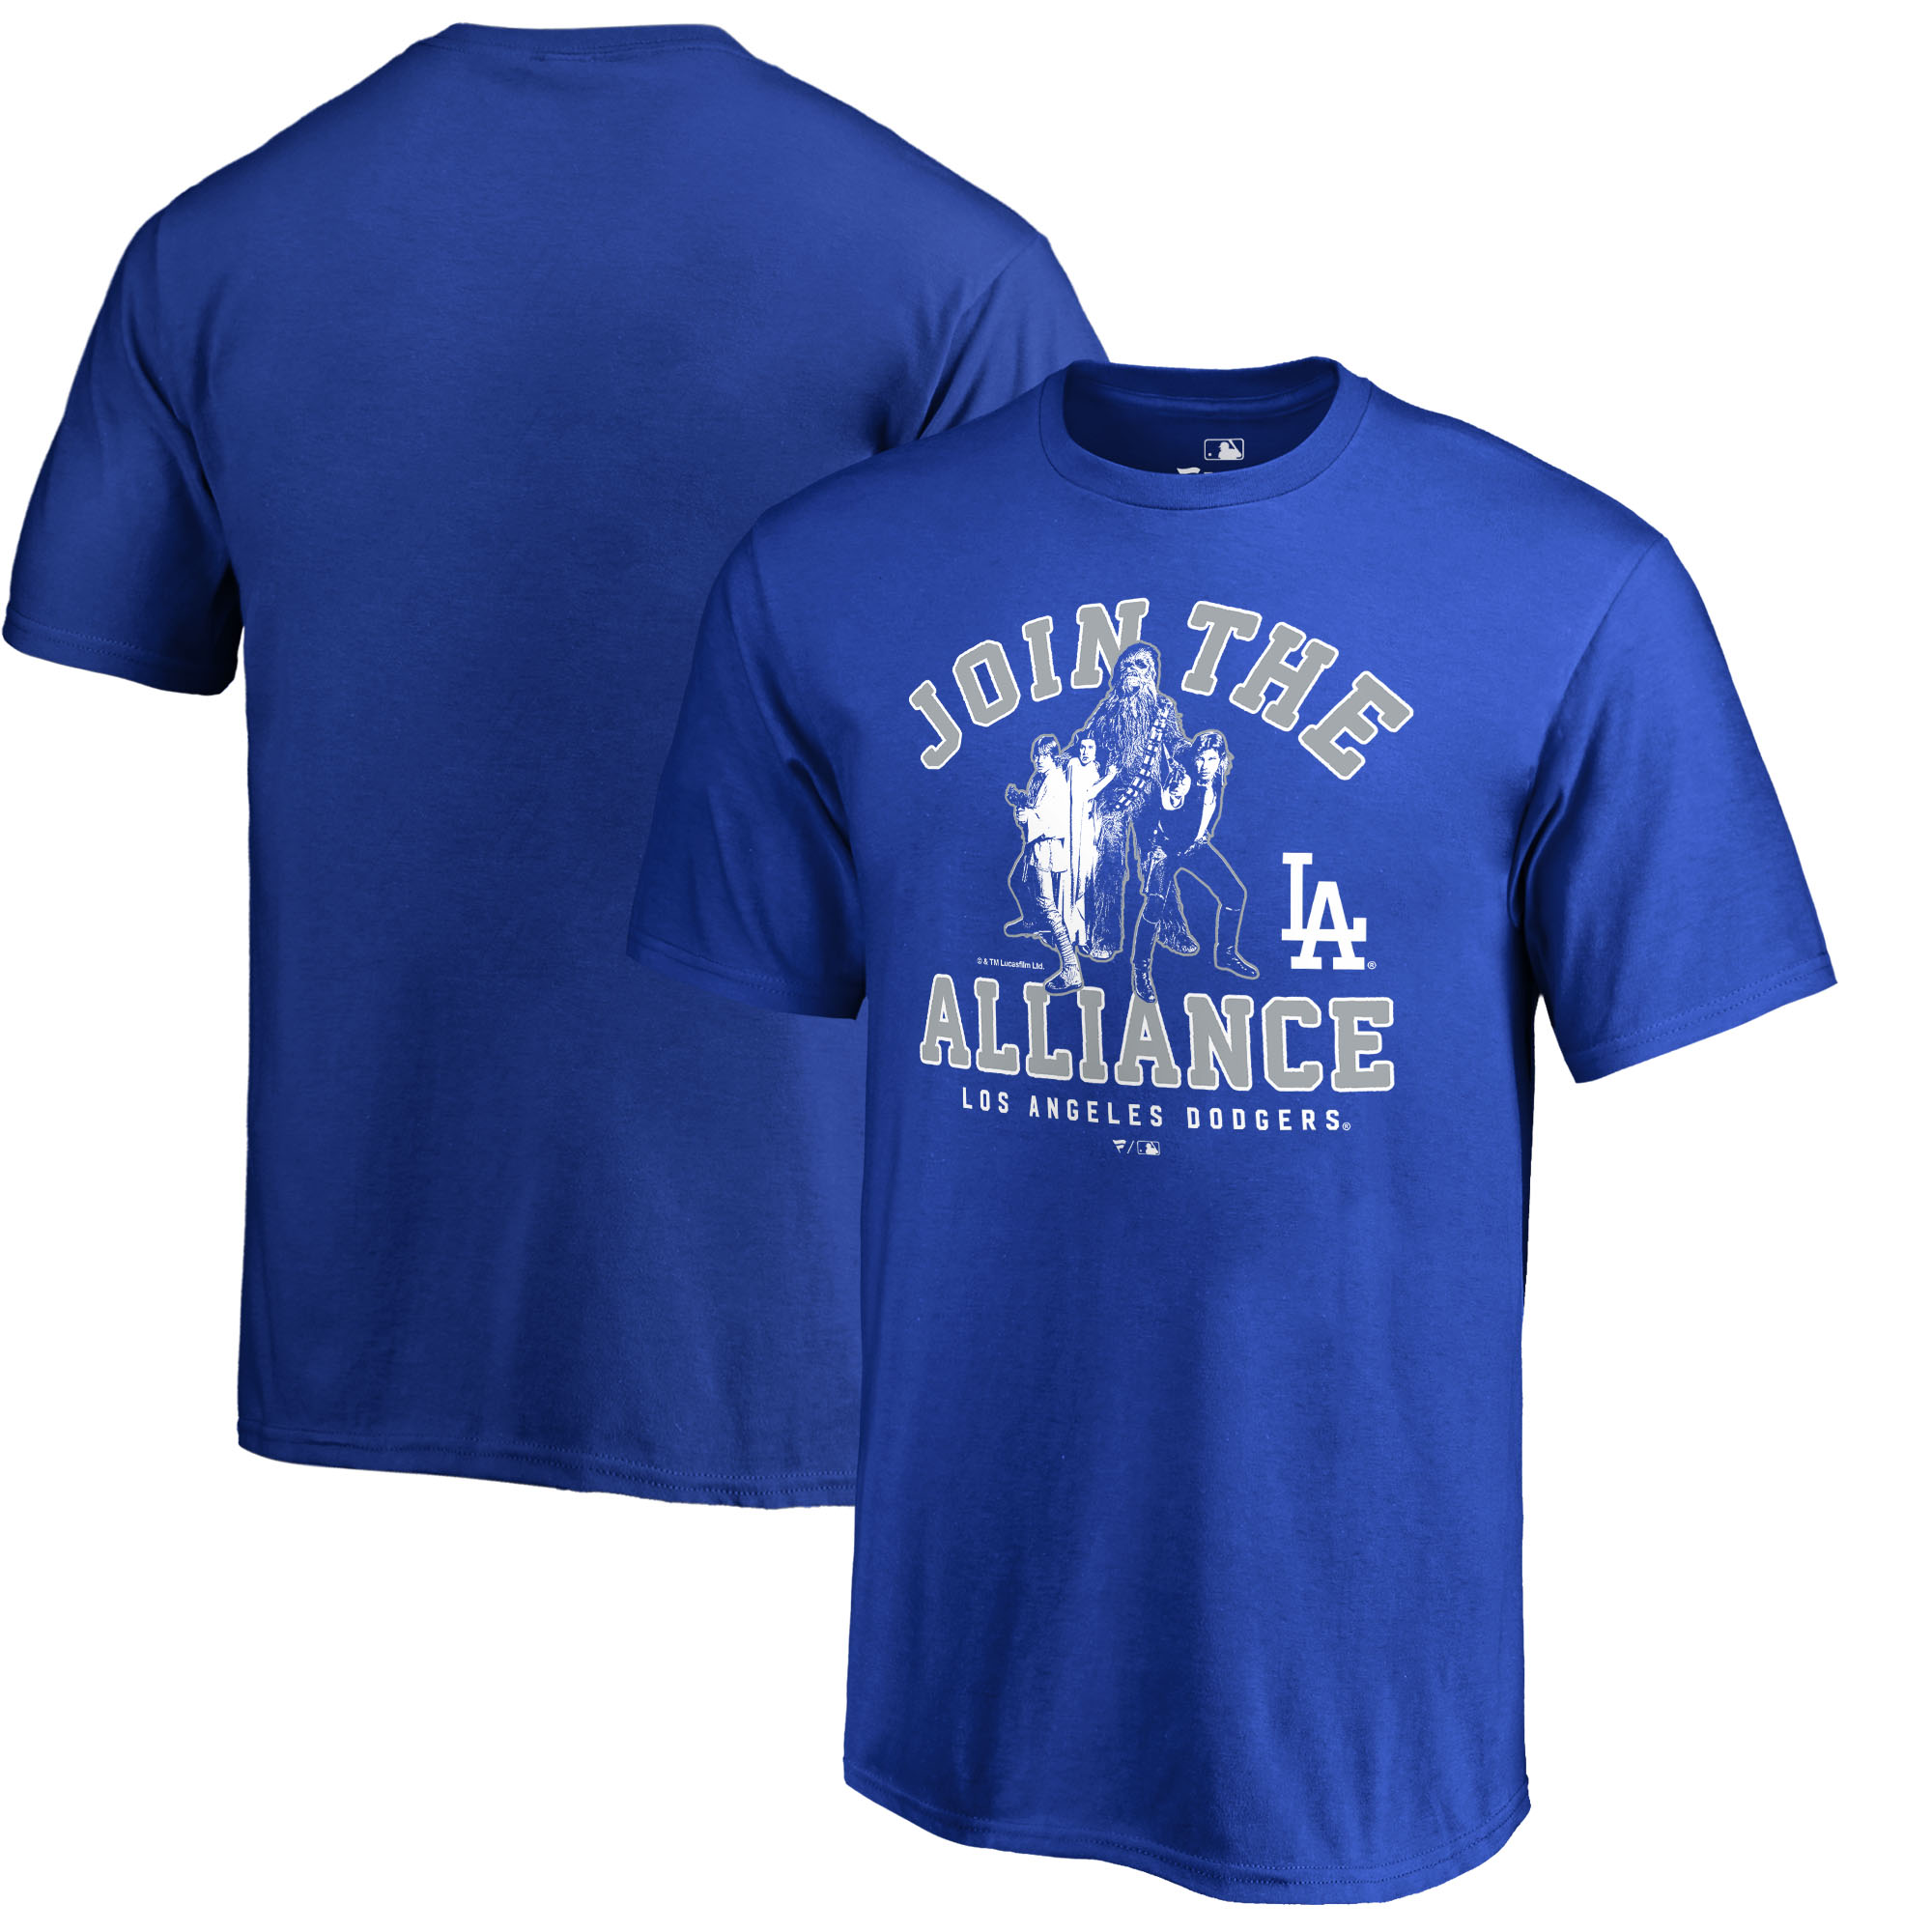 Los Angeles Dodgers Fanatics Branded Youth MLB Star Wars Join The Alliance T-Shirt - Royal